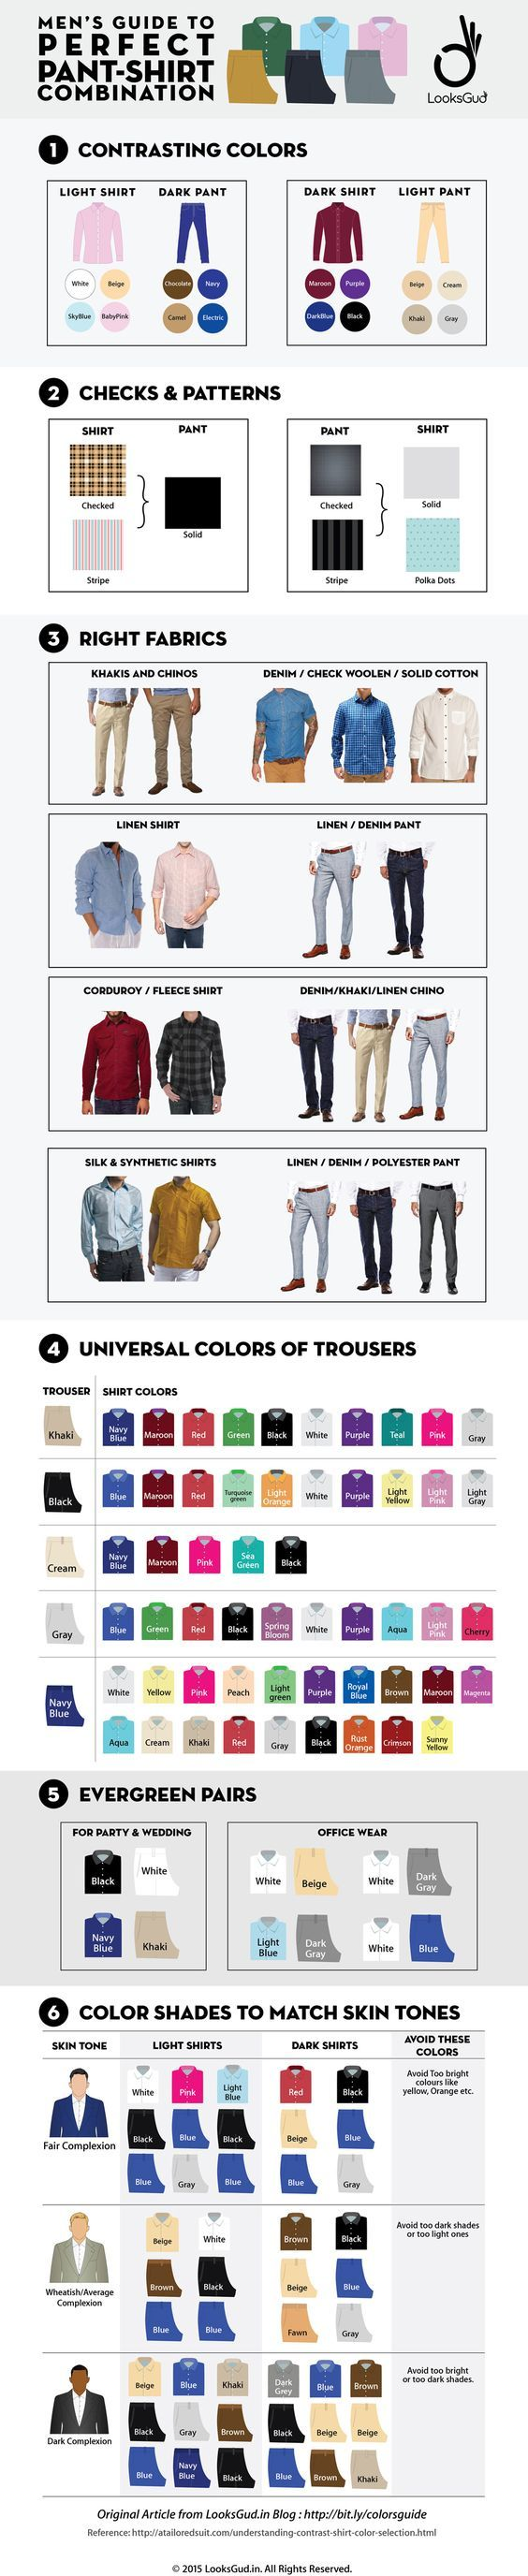 Perfect Pant Shirt Matching Guide for Men's Formal and Casual Look #Infographic #Fashion #LifeStyle